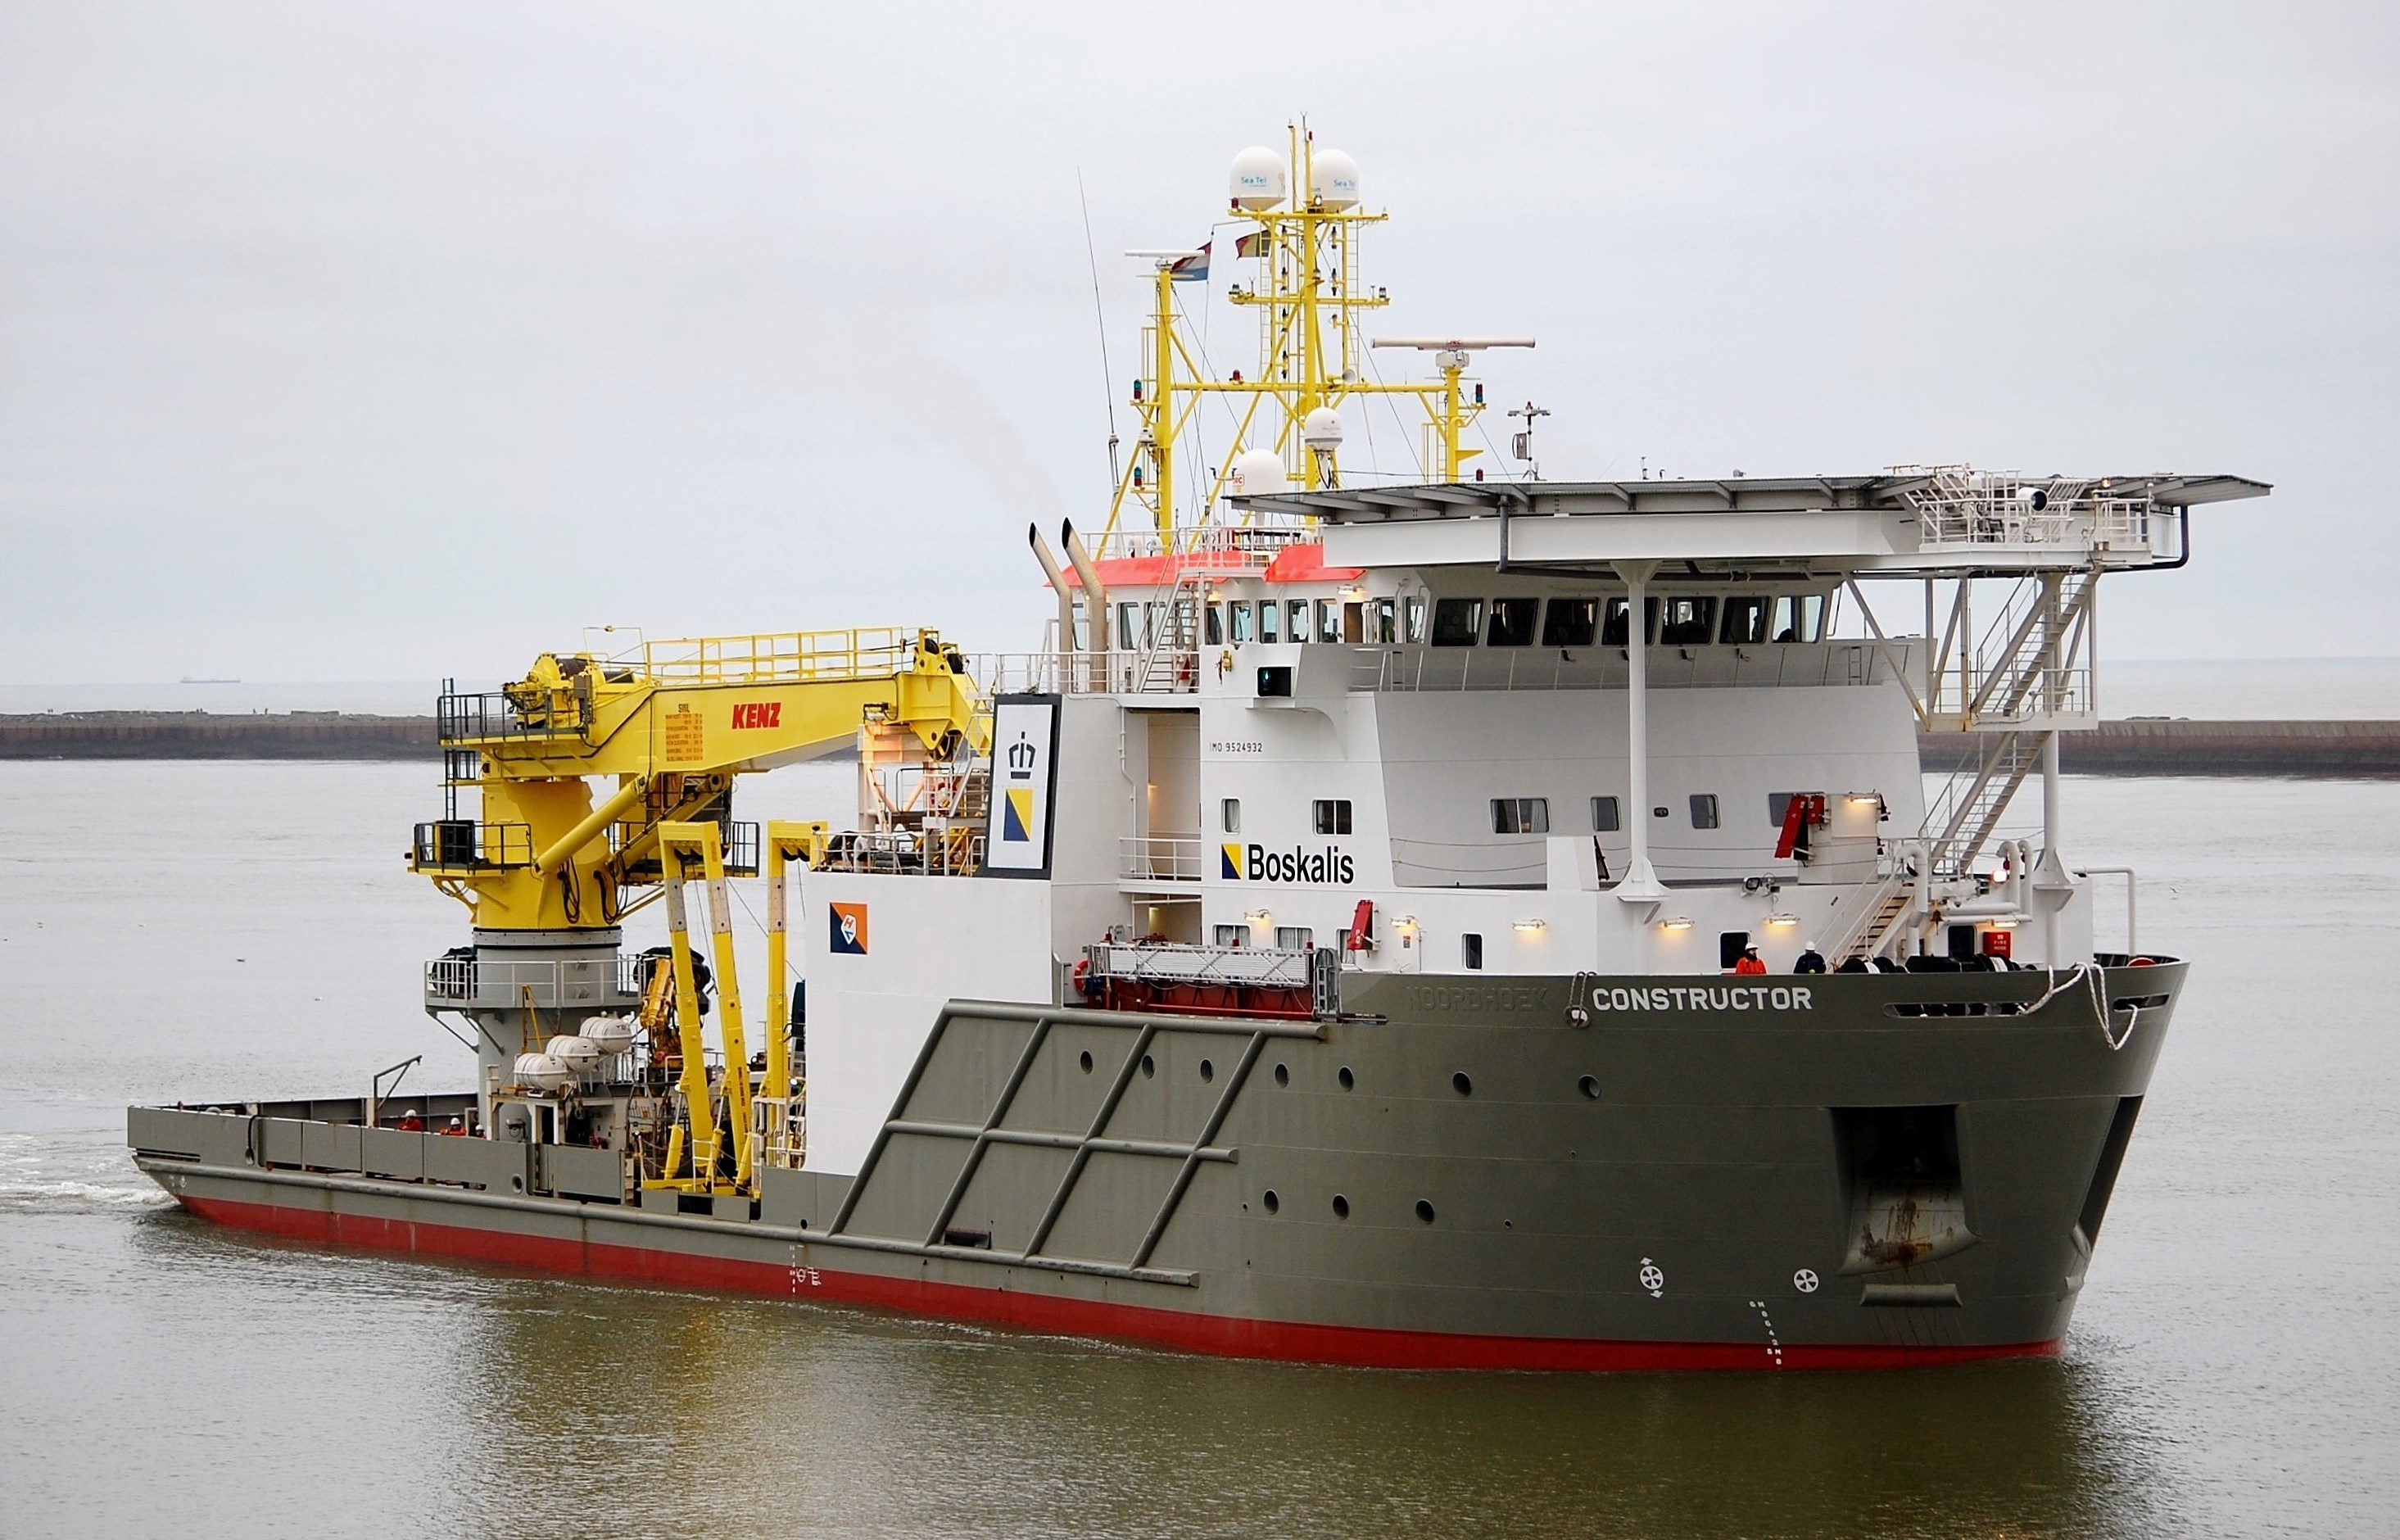 Boskalis signs multi-year subsea services contract in Middle East